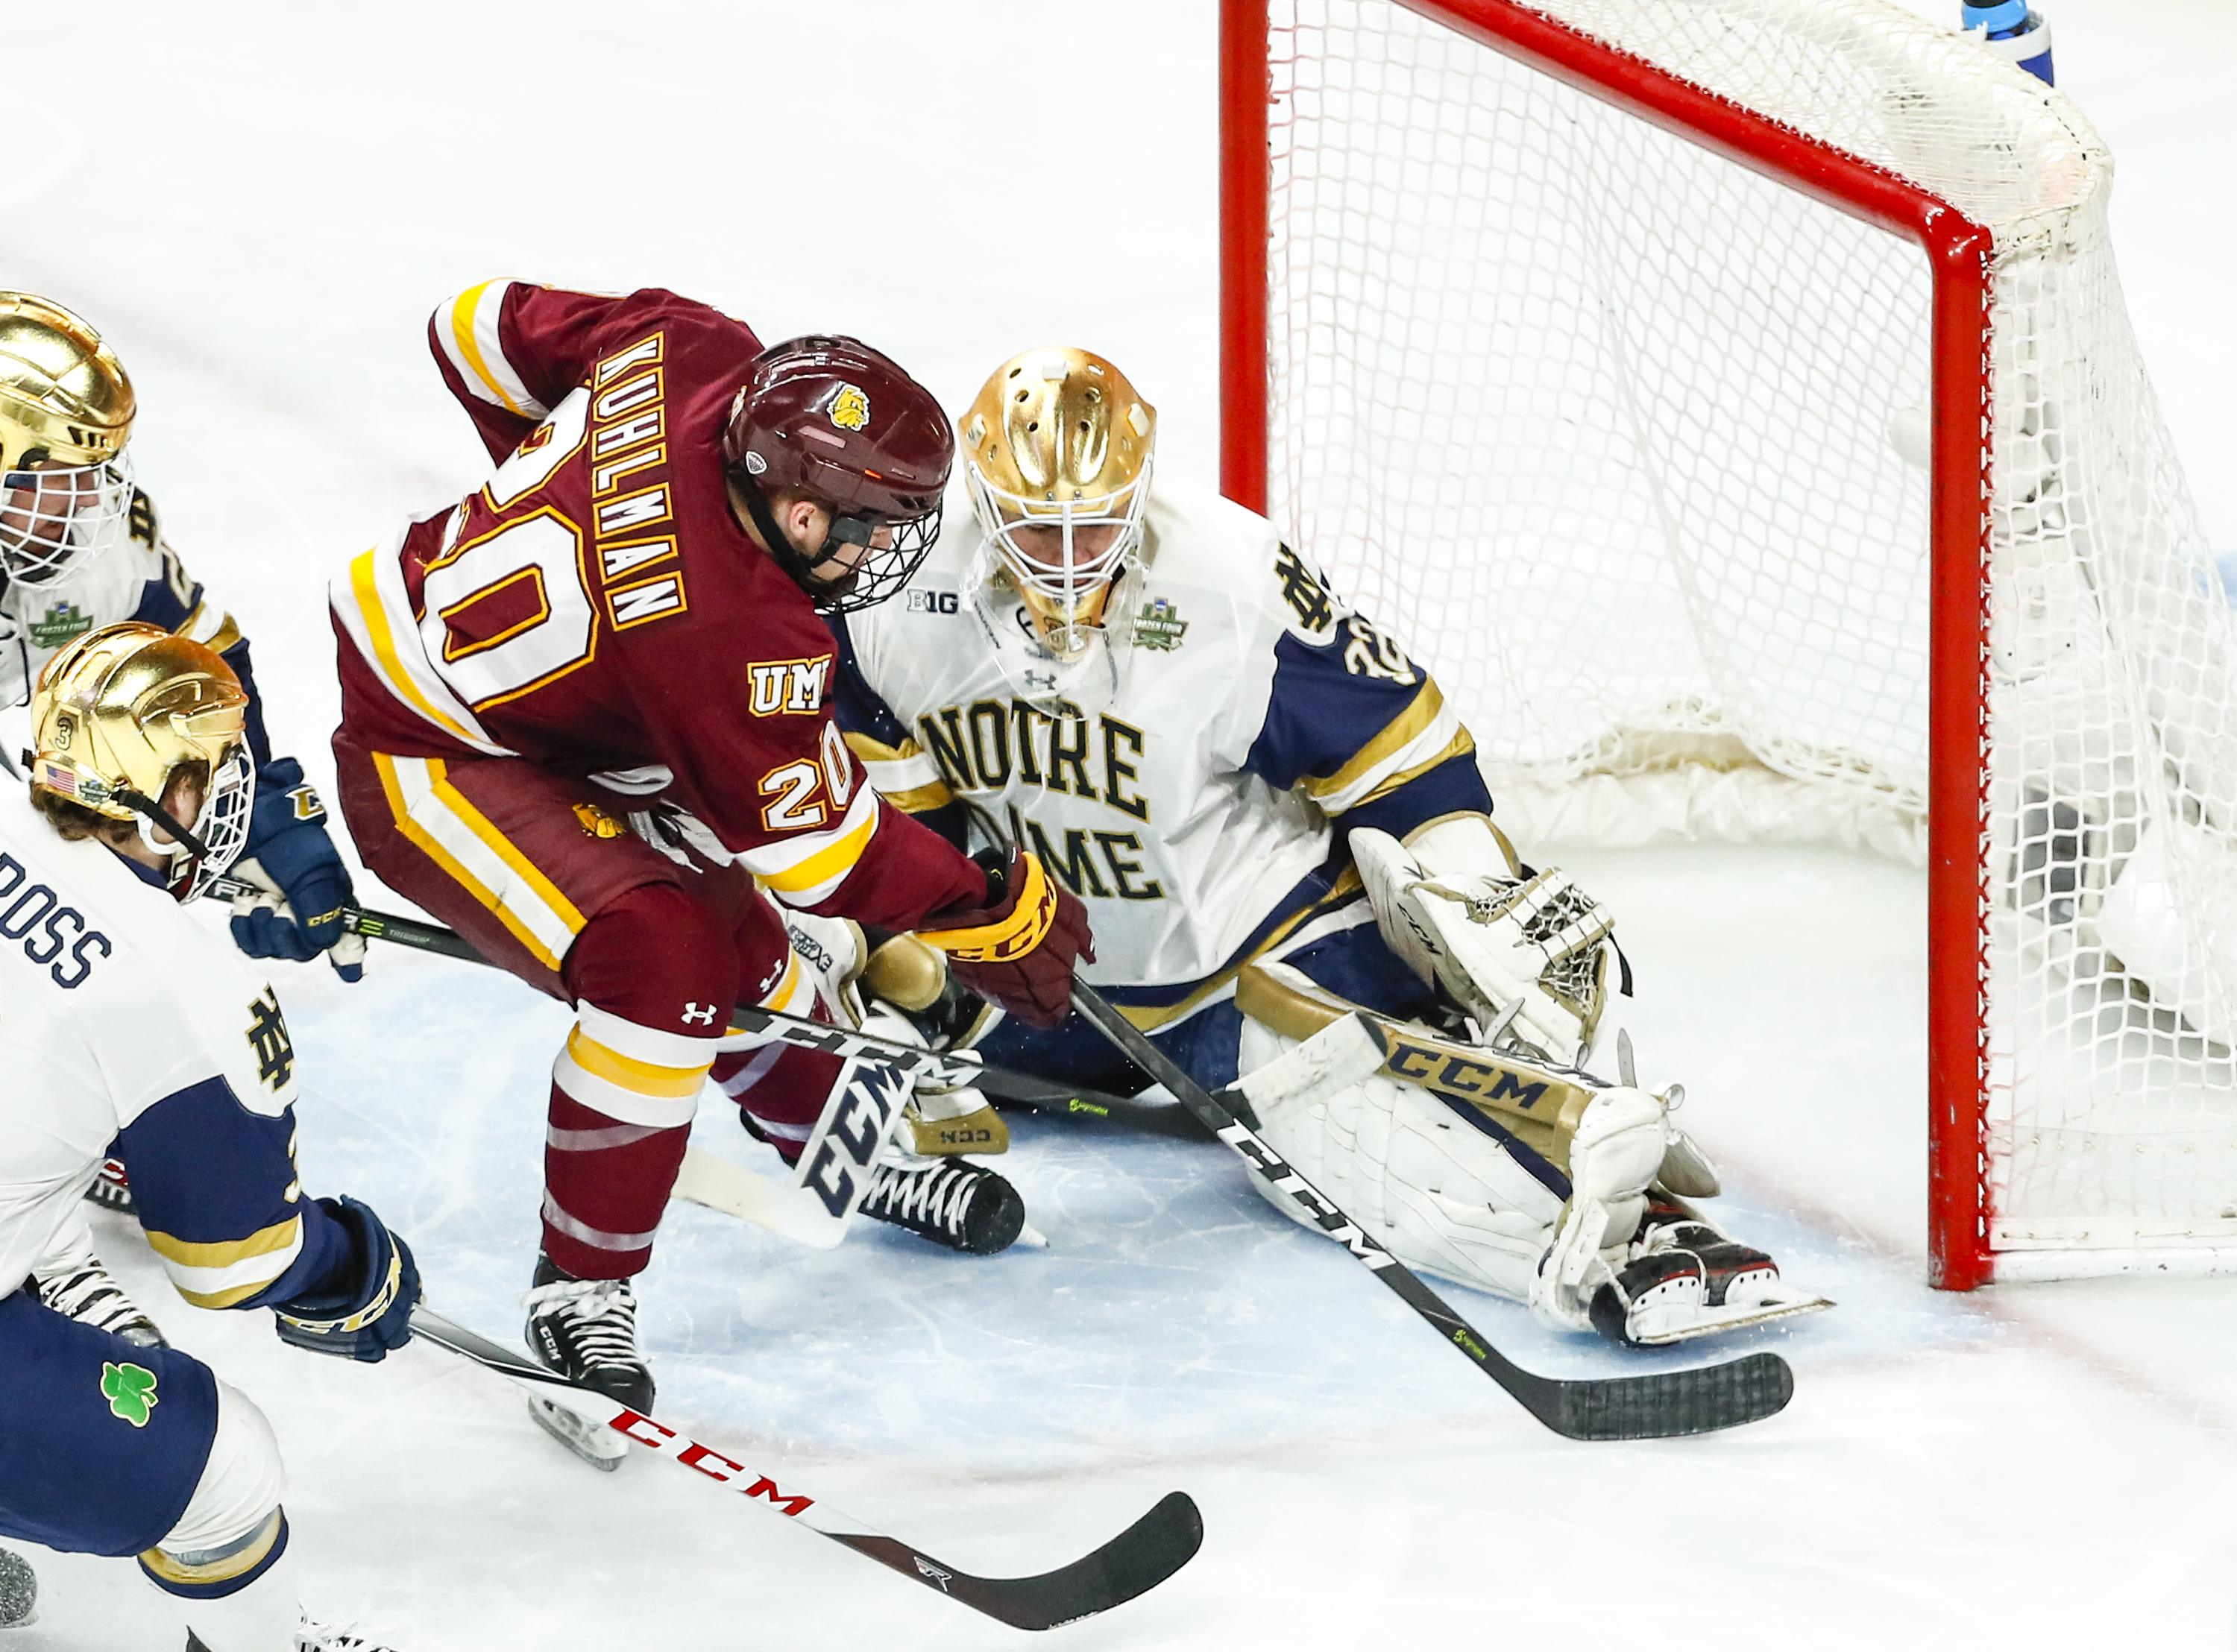 Locals Lead Minnesota Duluth To Second Men's National Title